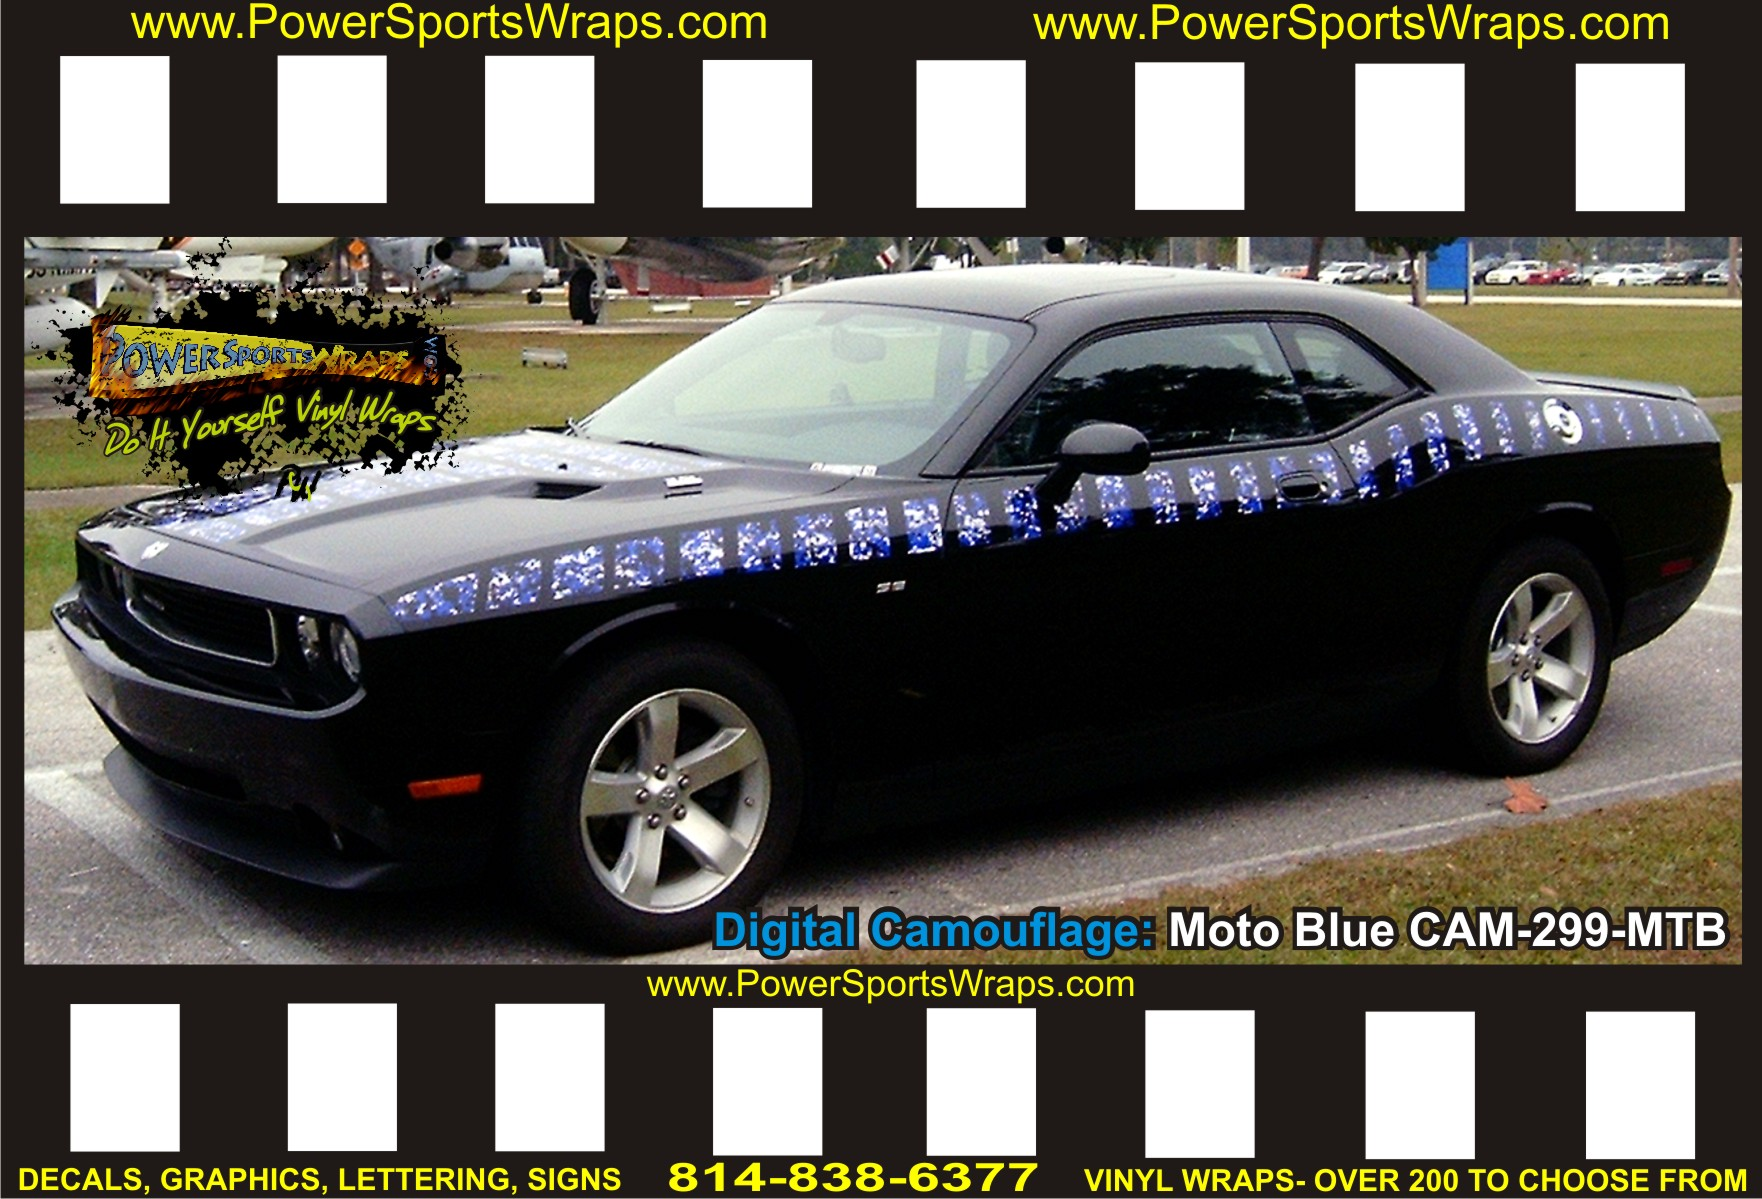 Camo Covering Digital Blue vinyl decals, wraps, graphics and more.. powersportswraps.com